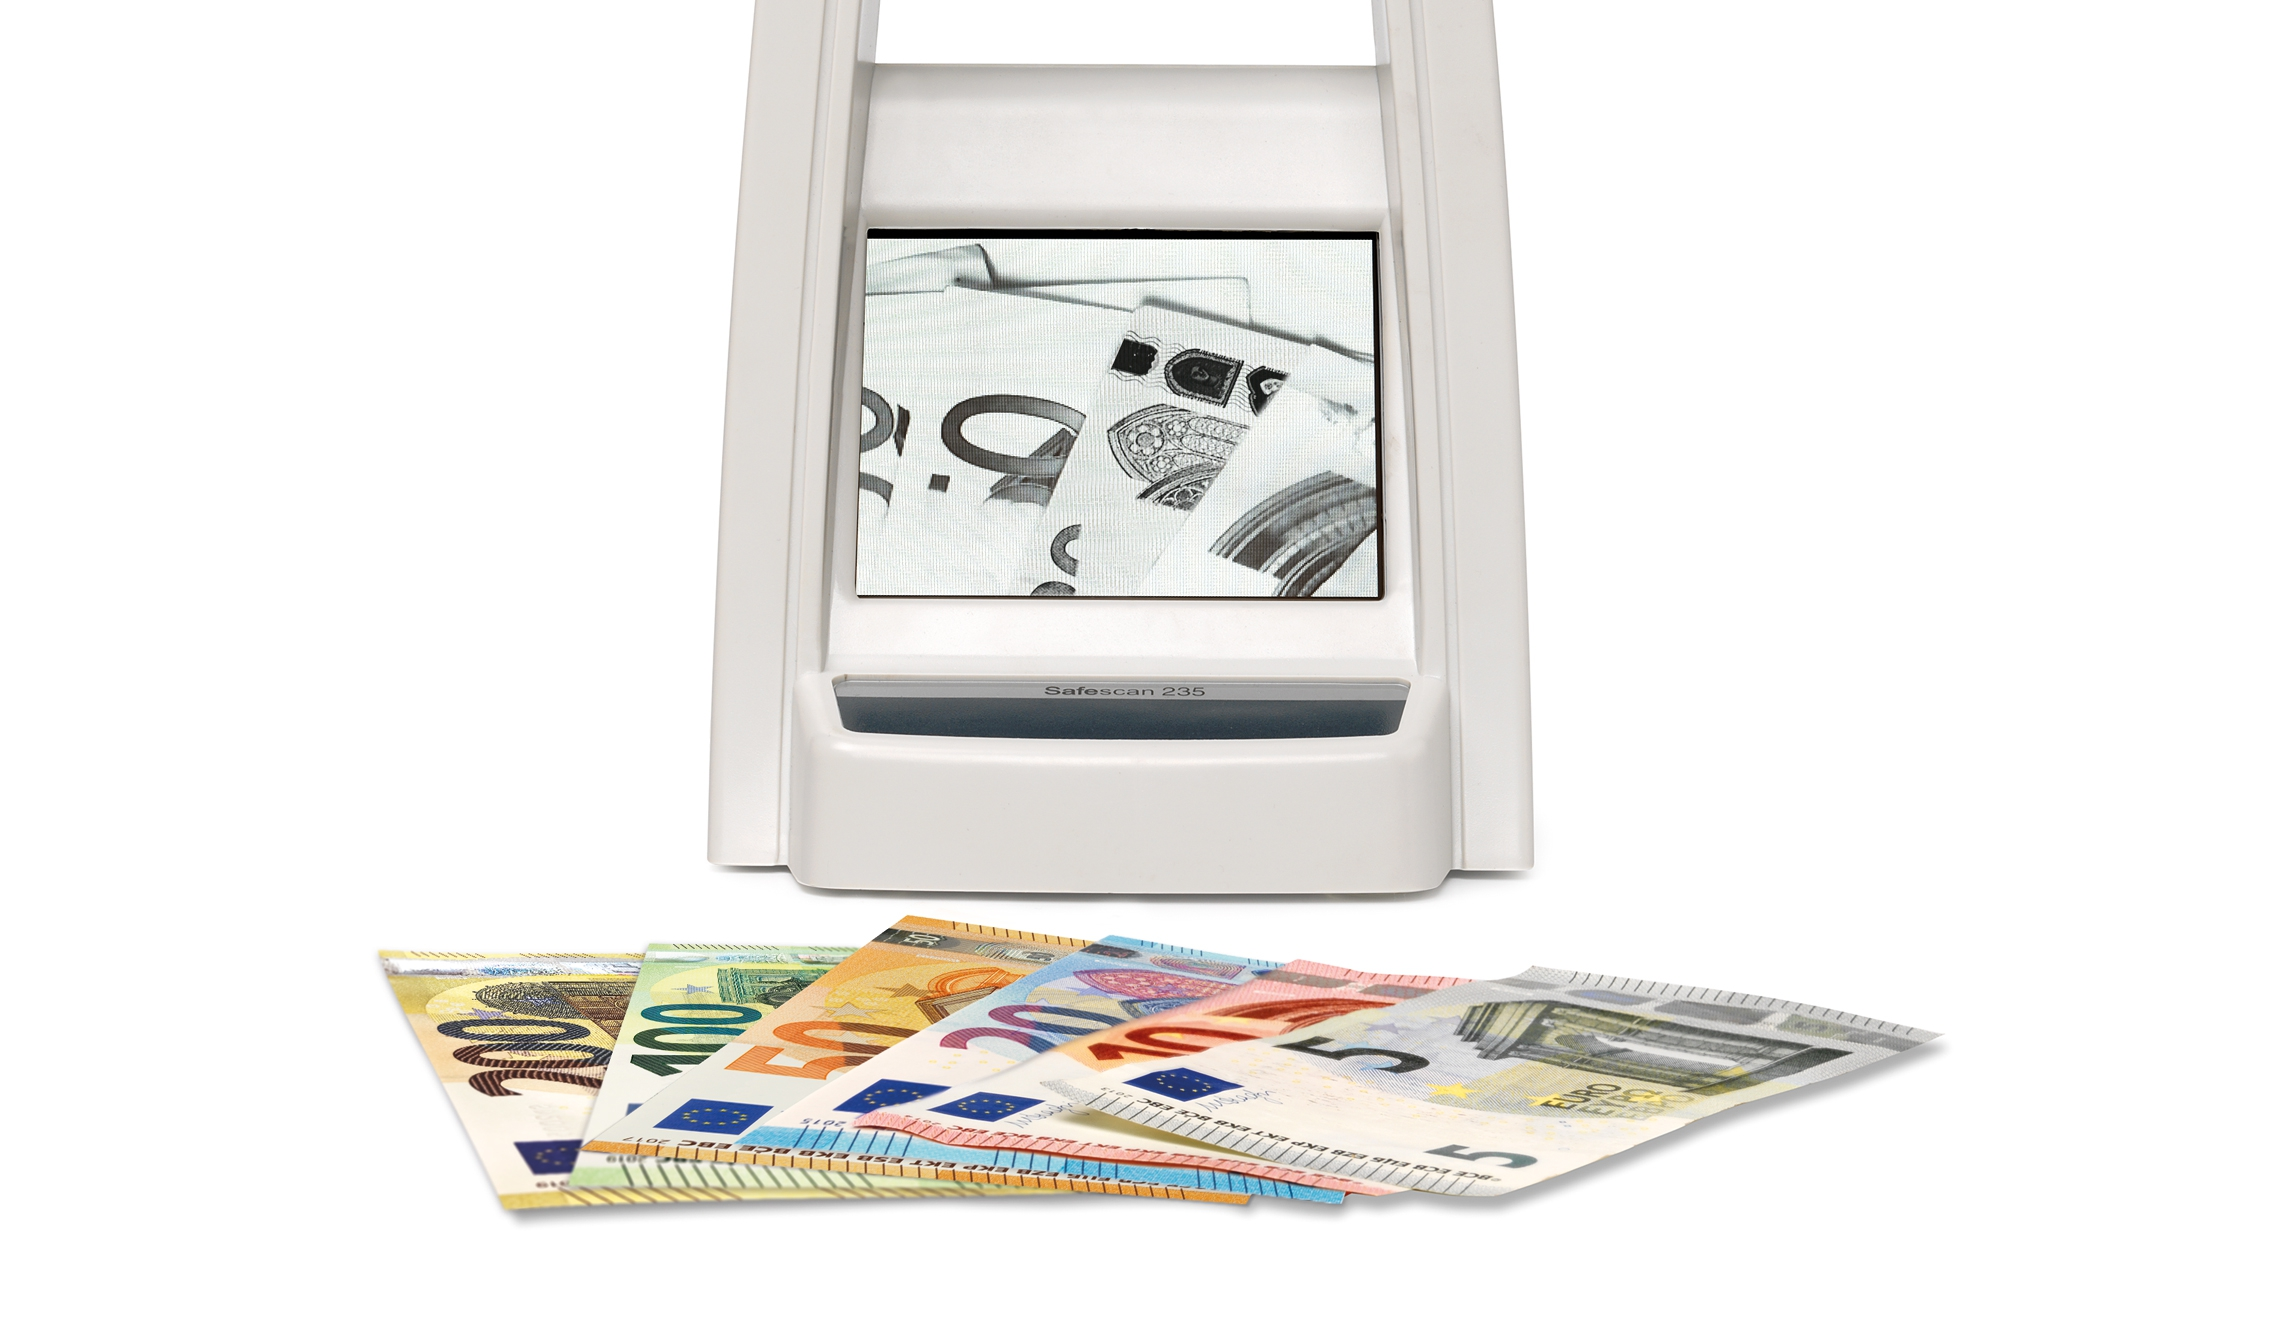 safescan-235-detects-infrared-features-banknotes